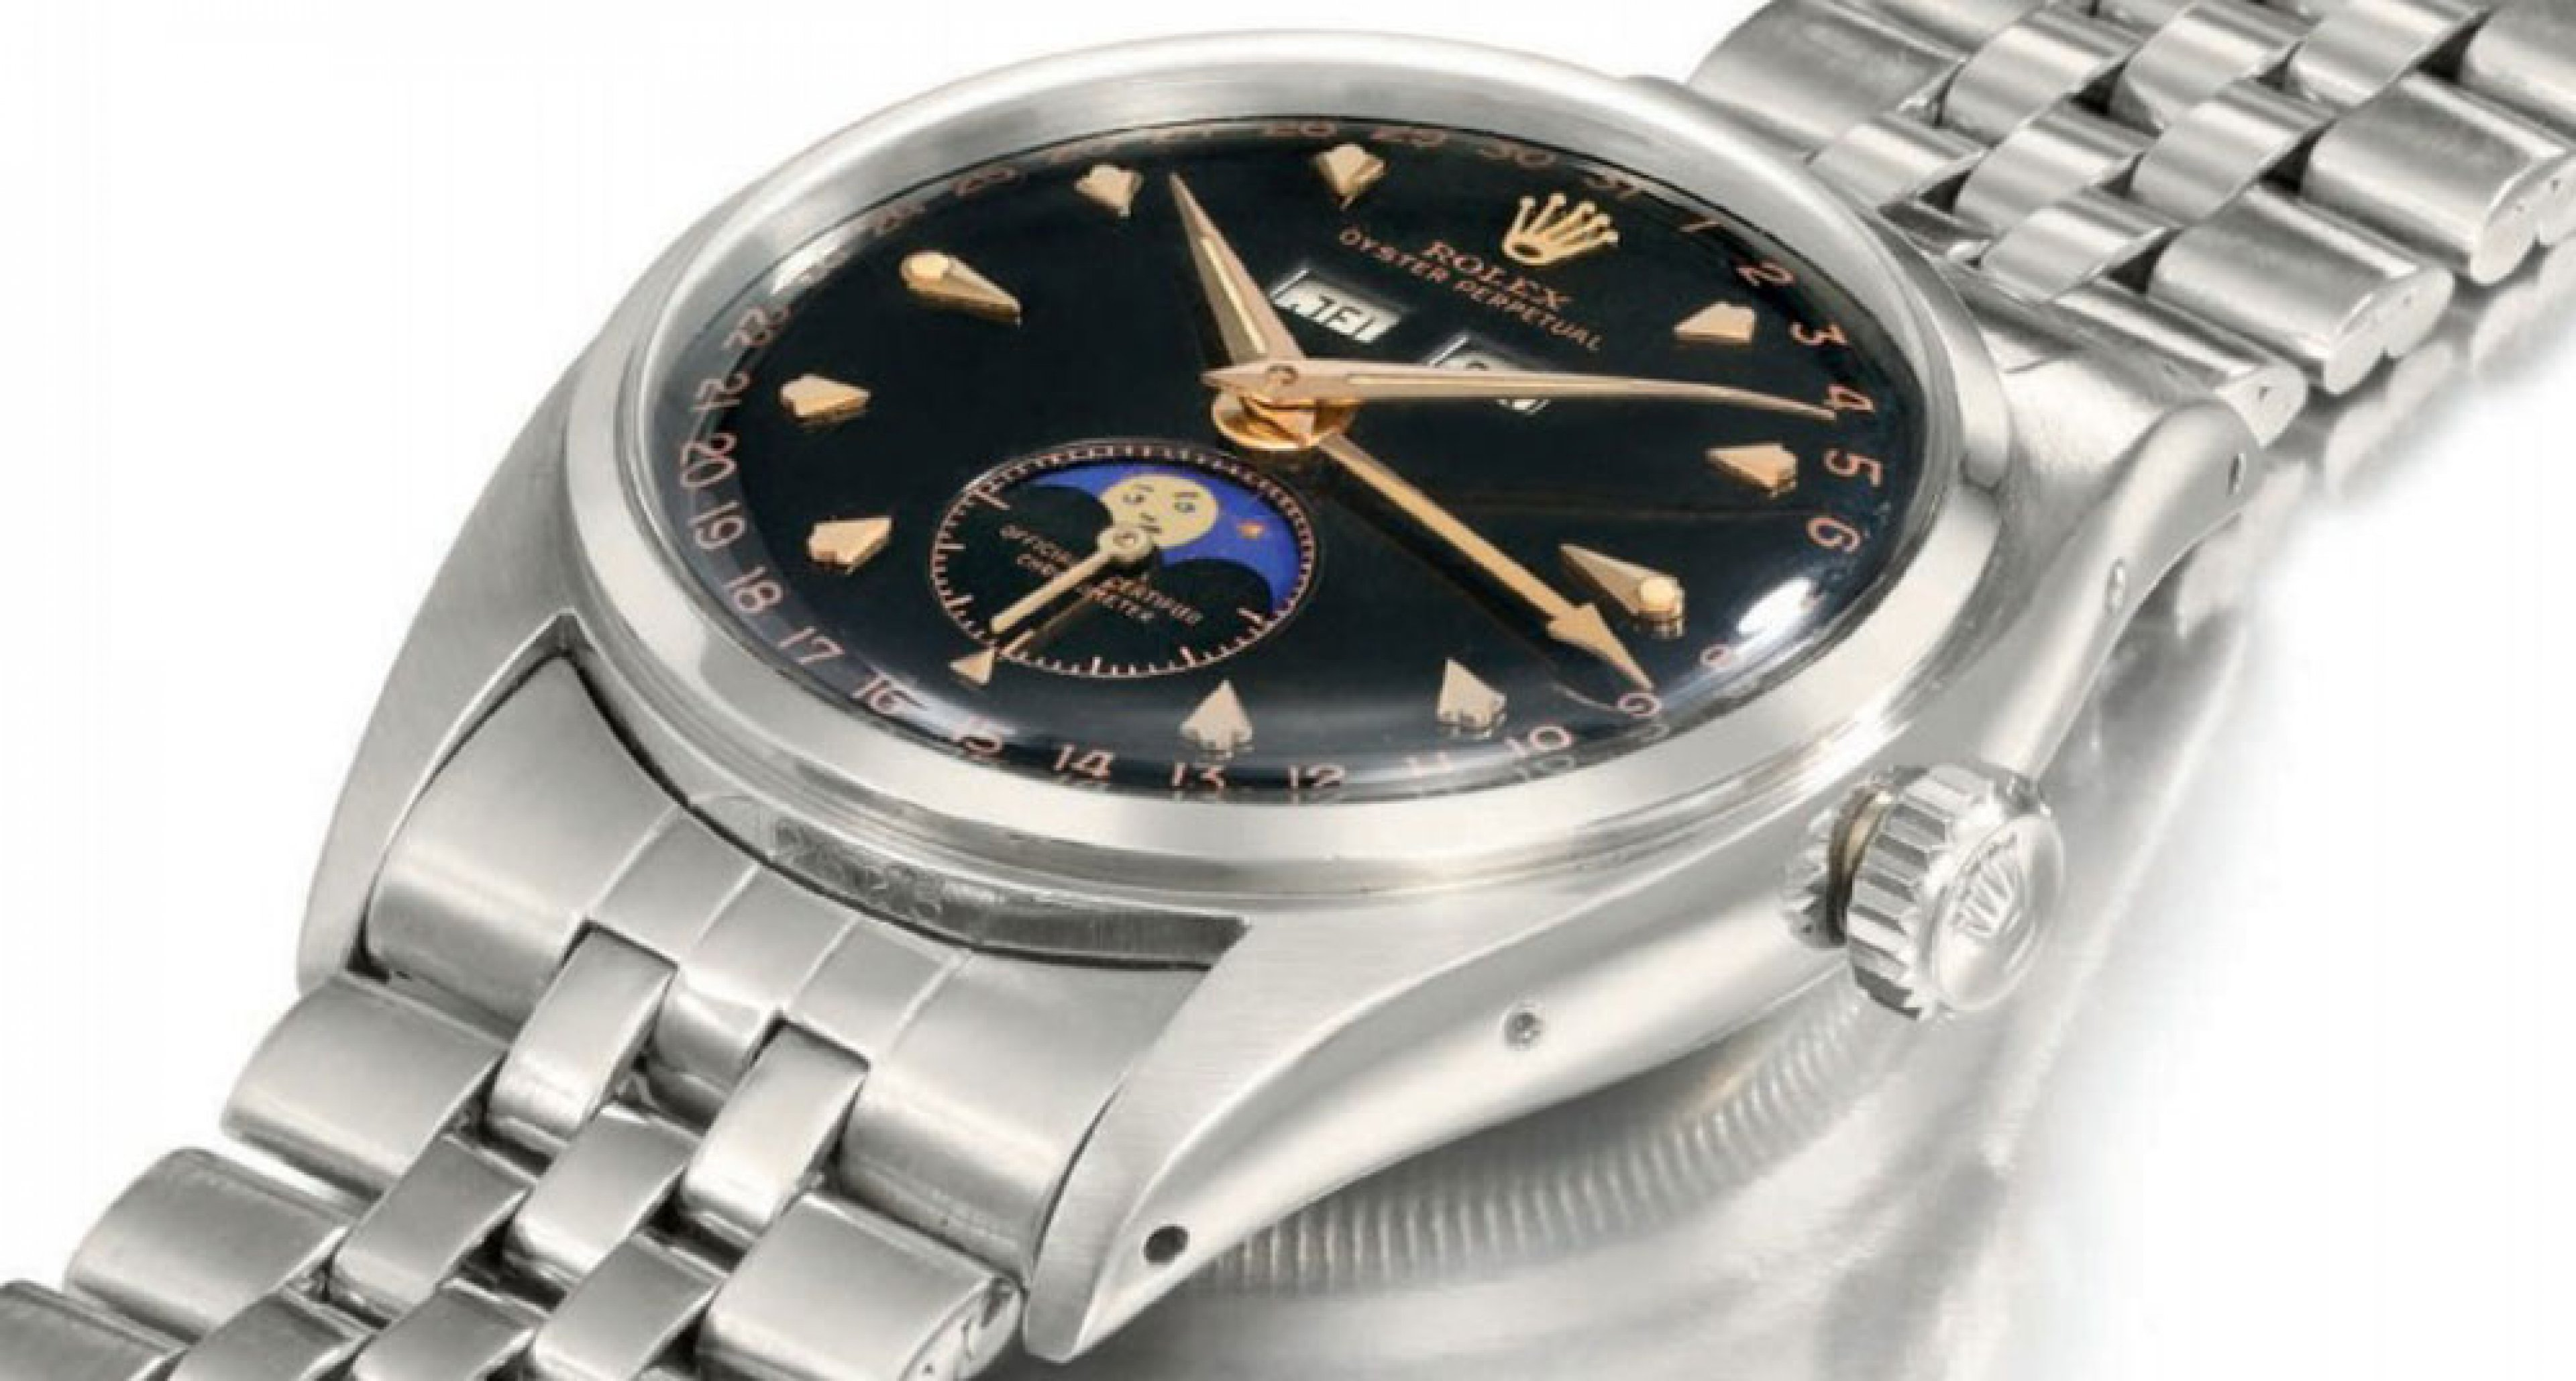 Lot 262 the very rare Rolex with moonphase and no indexes